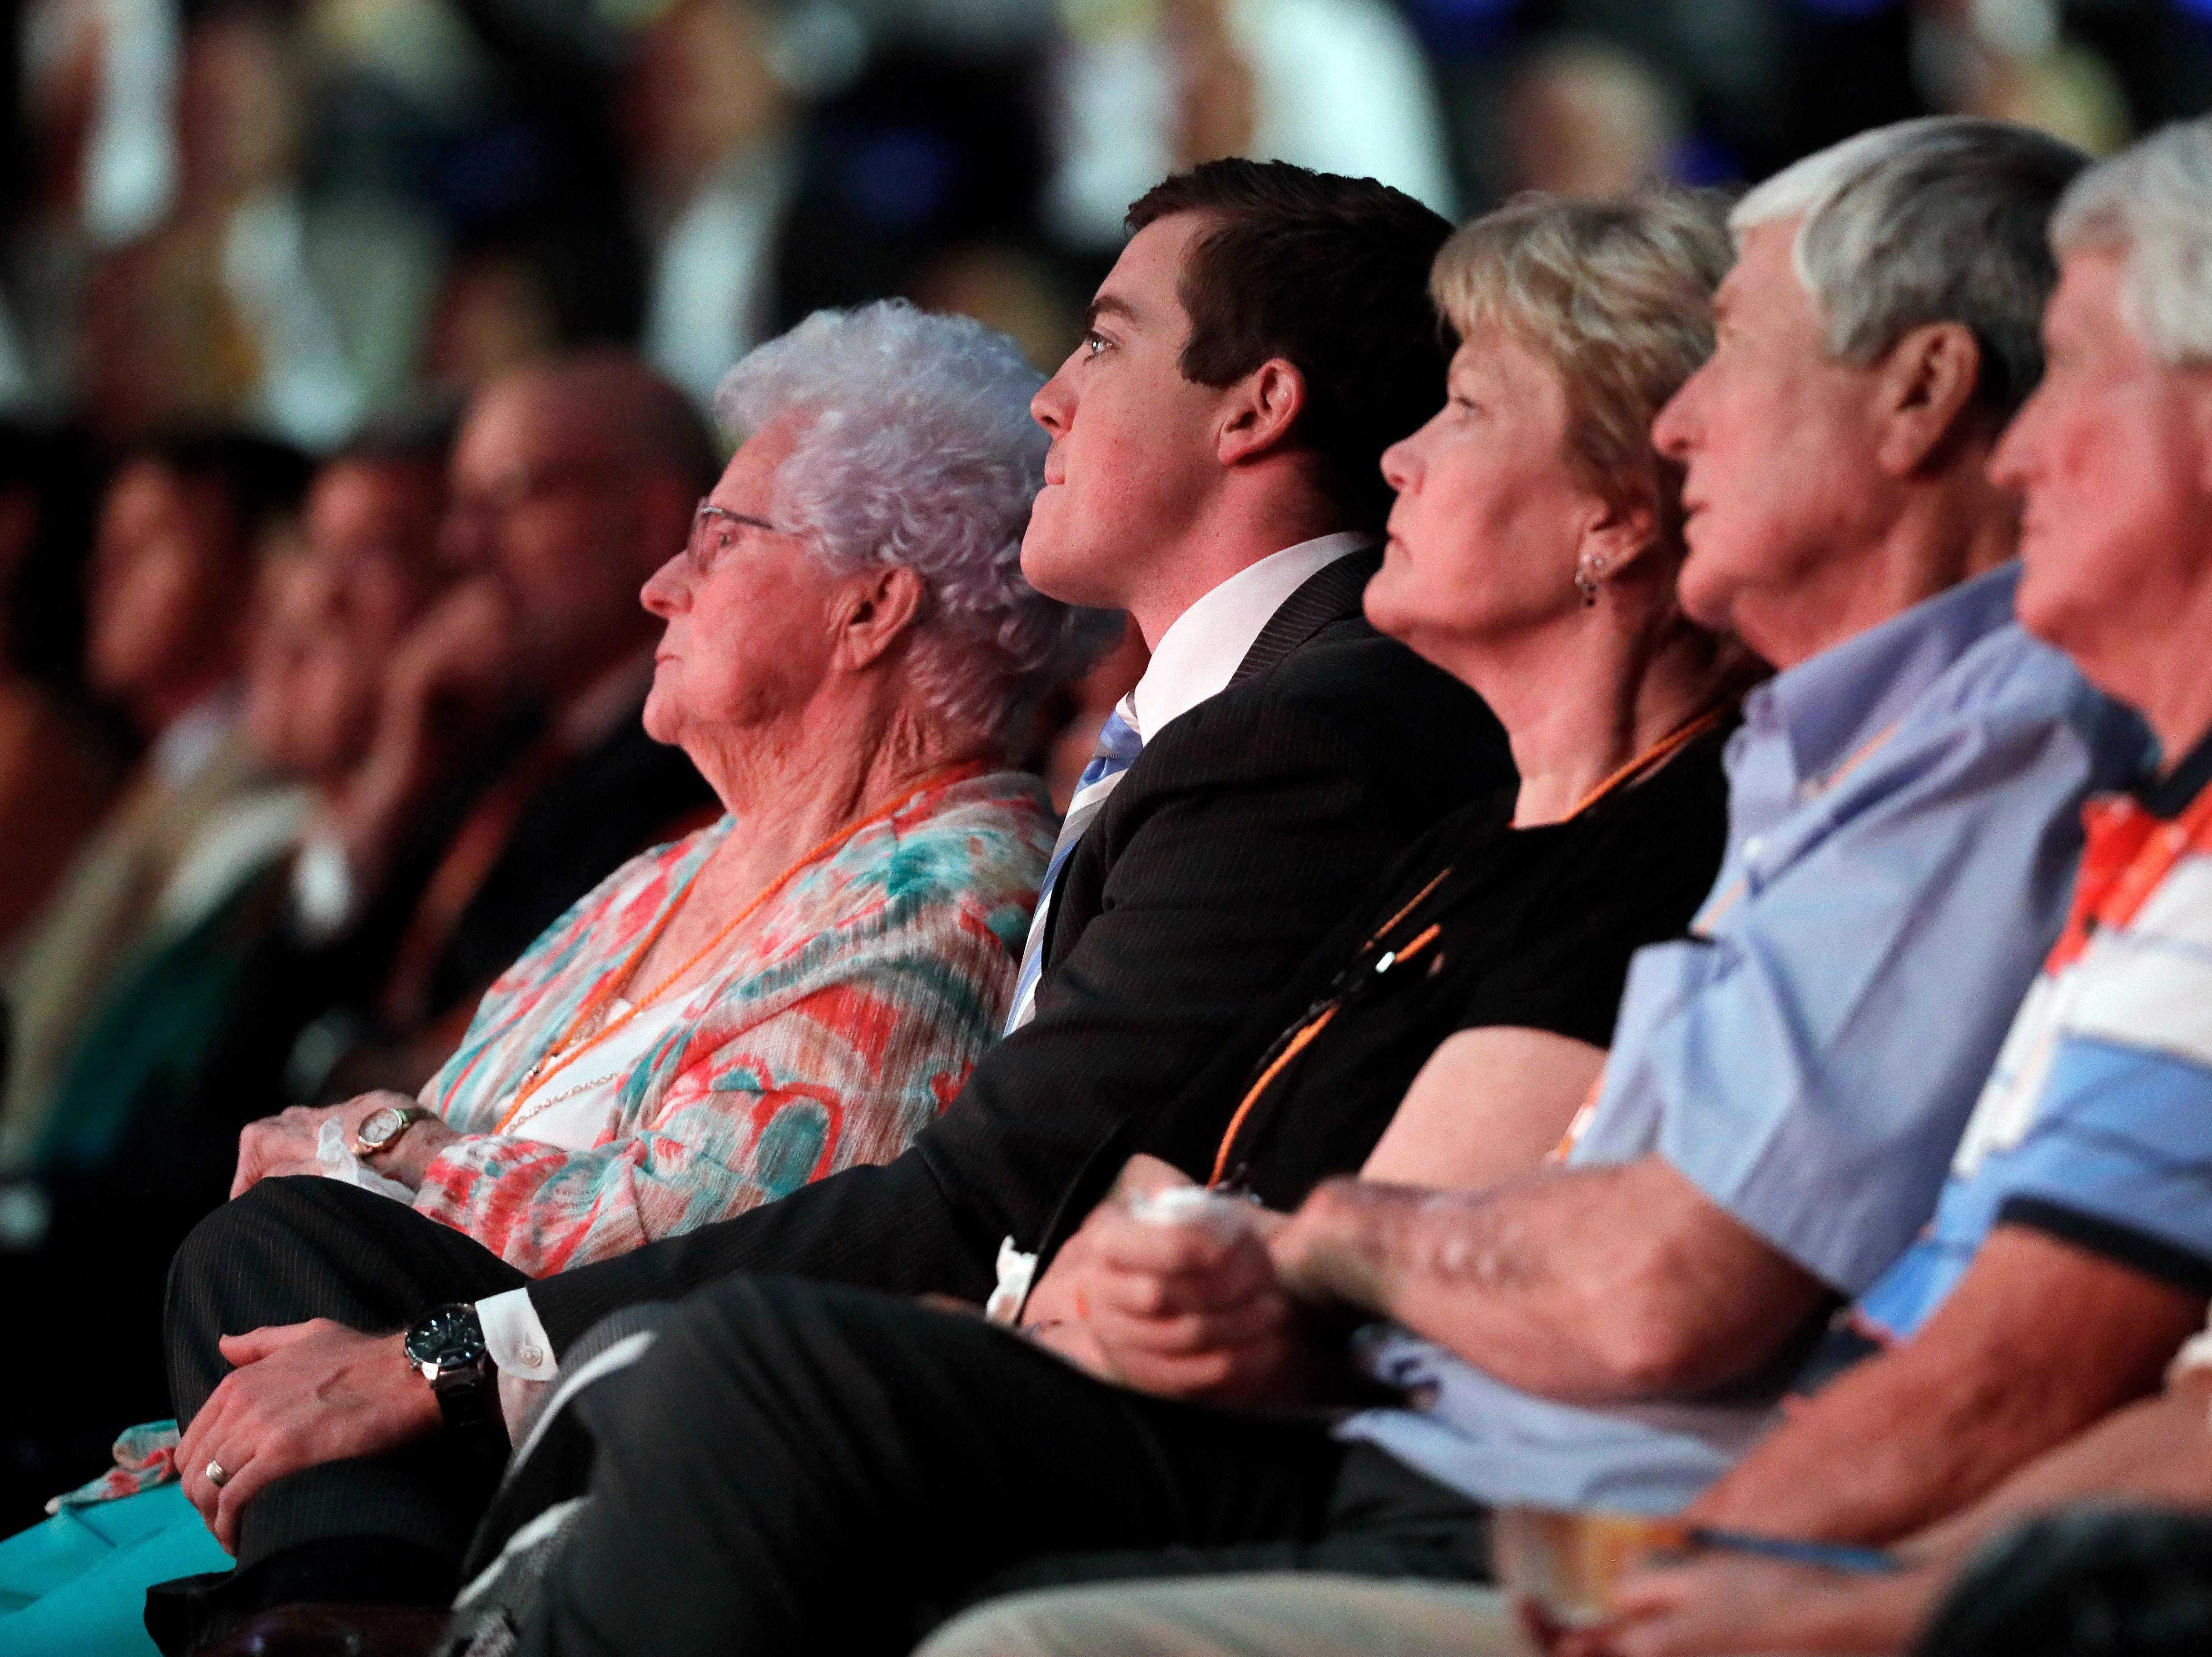 Hazel Albright Head, left, mother of Pat Summitt, sits with Summitt's son, Tyler Summitt, center, and Summitt's sister, Linda Head, third from left, during a ceremony to celebrate the life of former Tennessee women's basketball coach Pat Summitt Thursday, July 14, 2016, in Knoxville, Tenn. Summitt died June 28 at the age of 64.